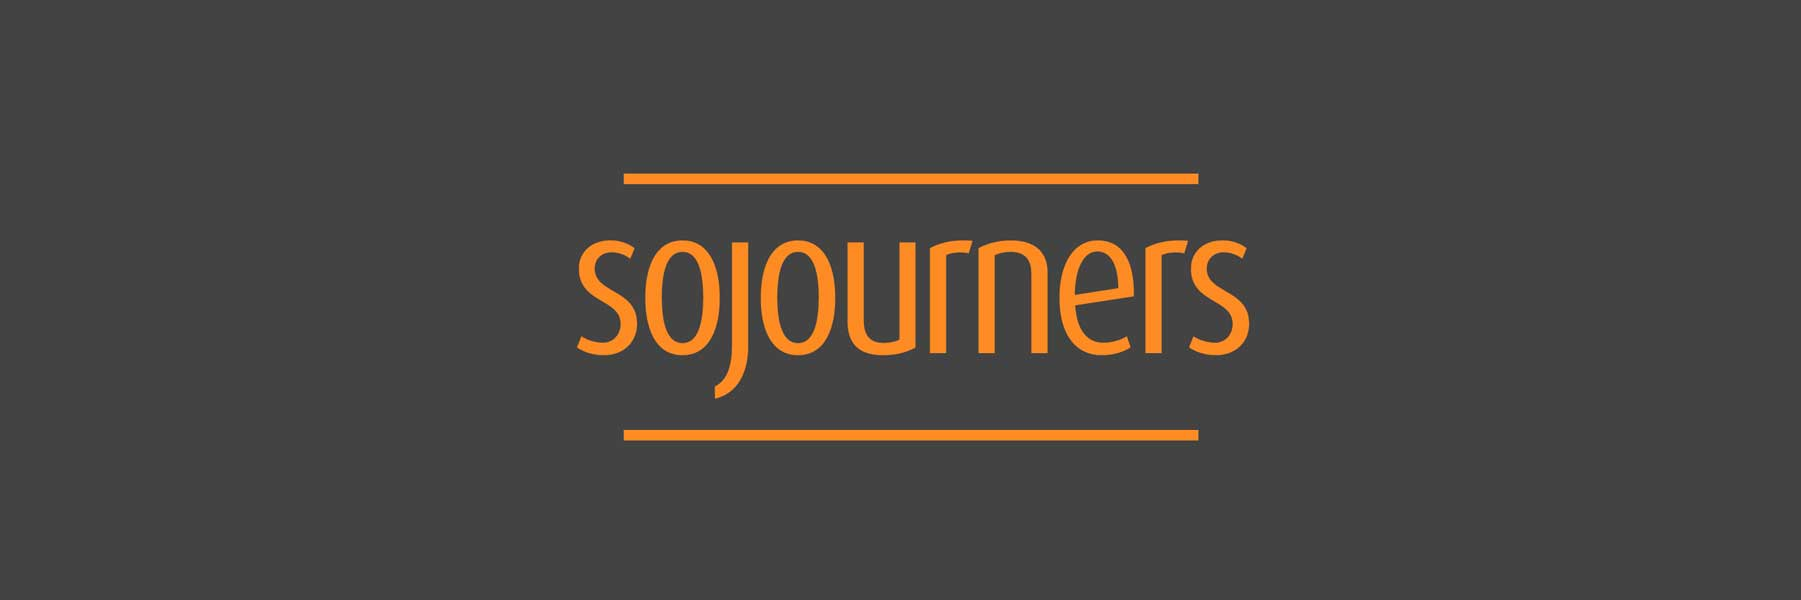 Sojourners: Contact Information, Journalists, and Overview ...